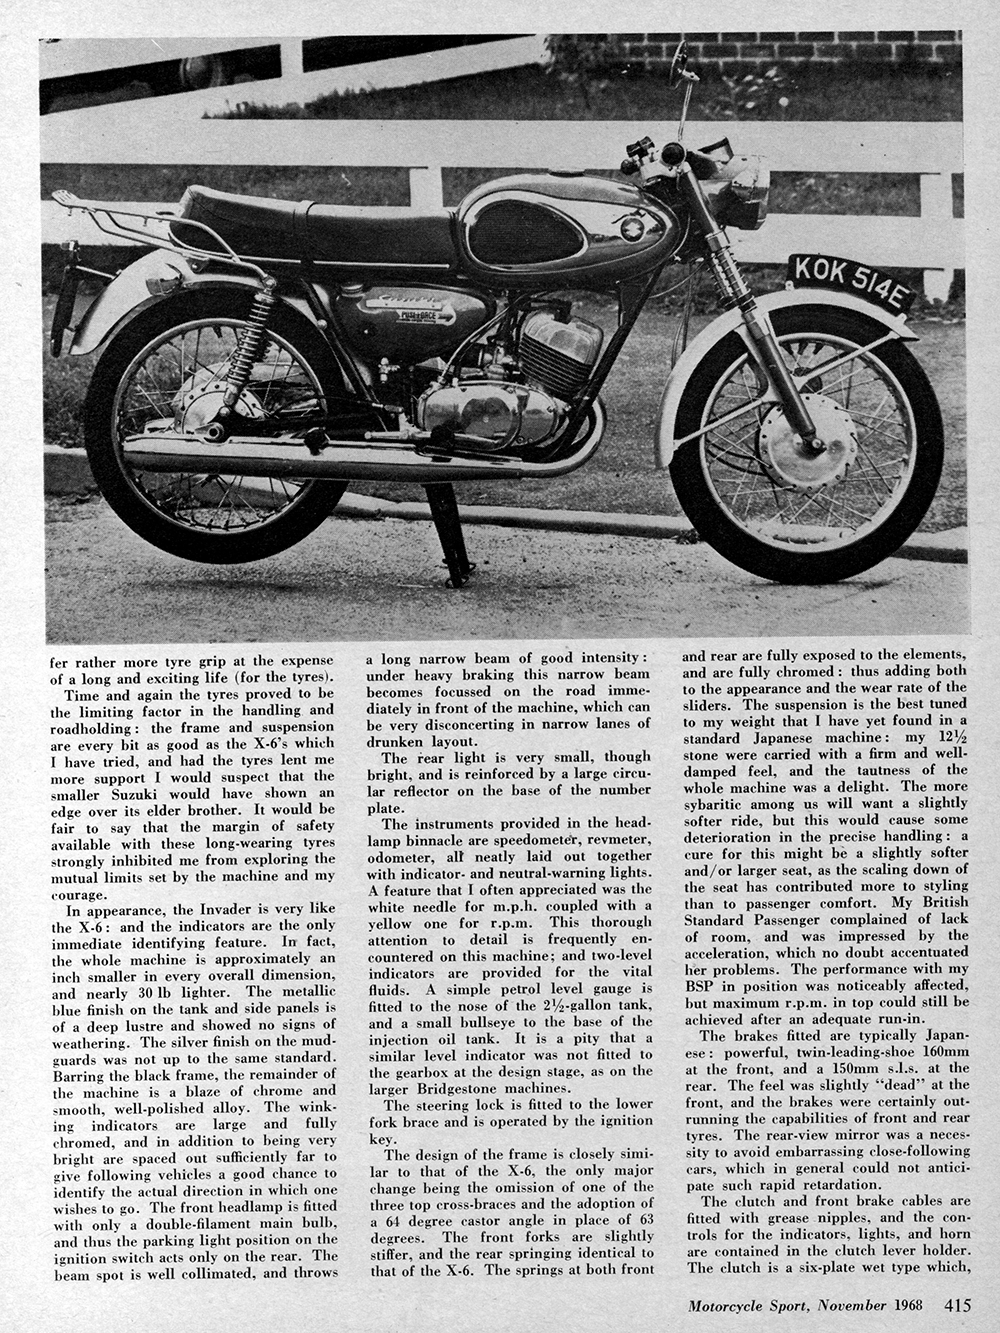 1969 Suzuki T200 road test 2.jpg